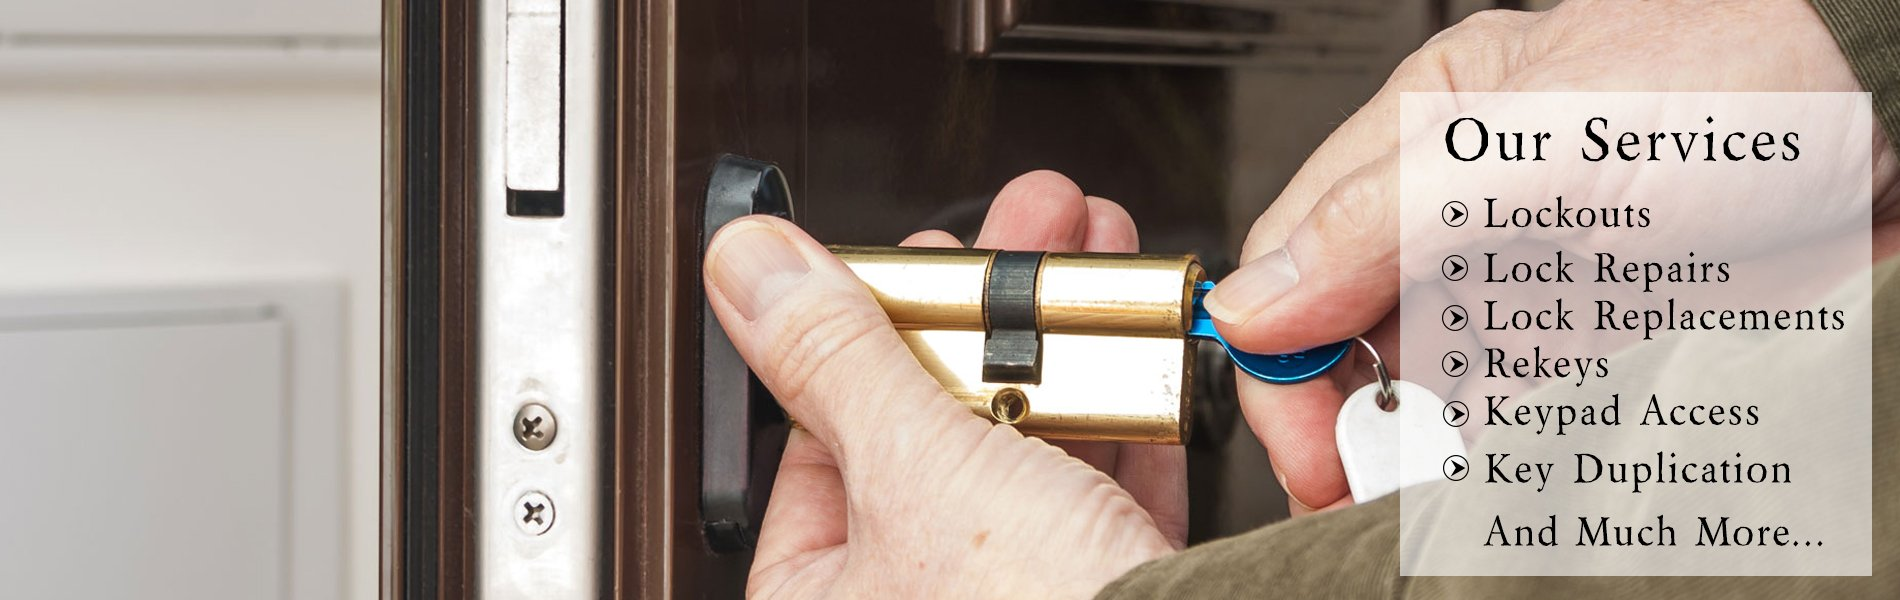 Community Locksmith Store Rancho Palos Verdes, CA 310-955-1738